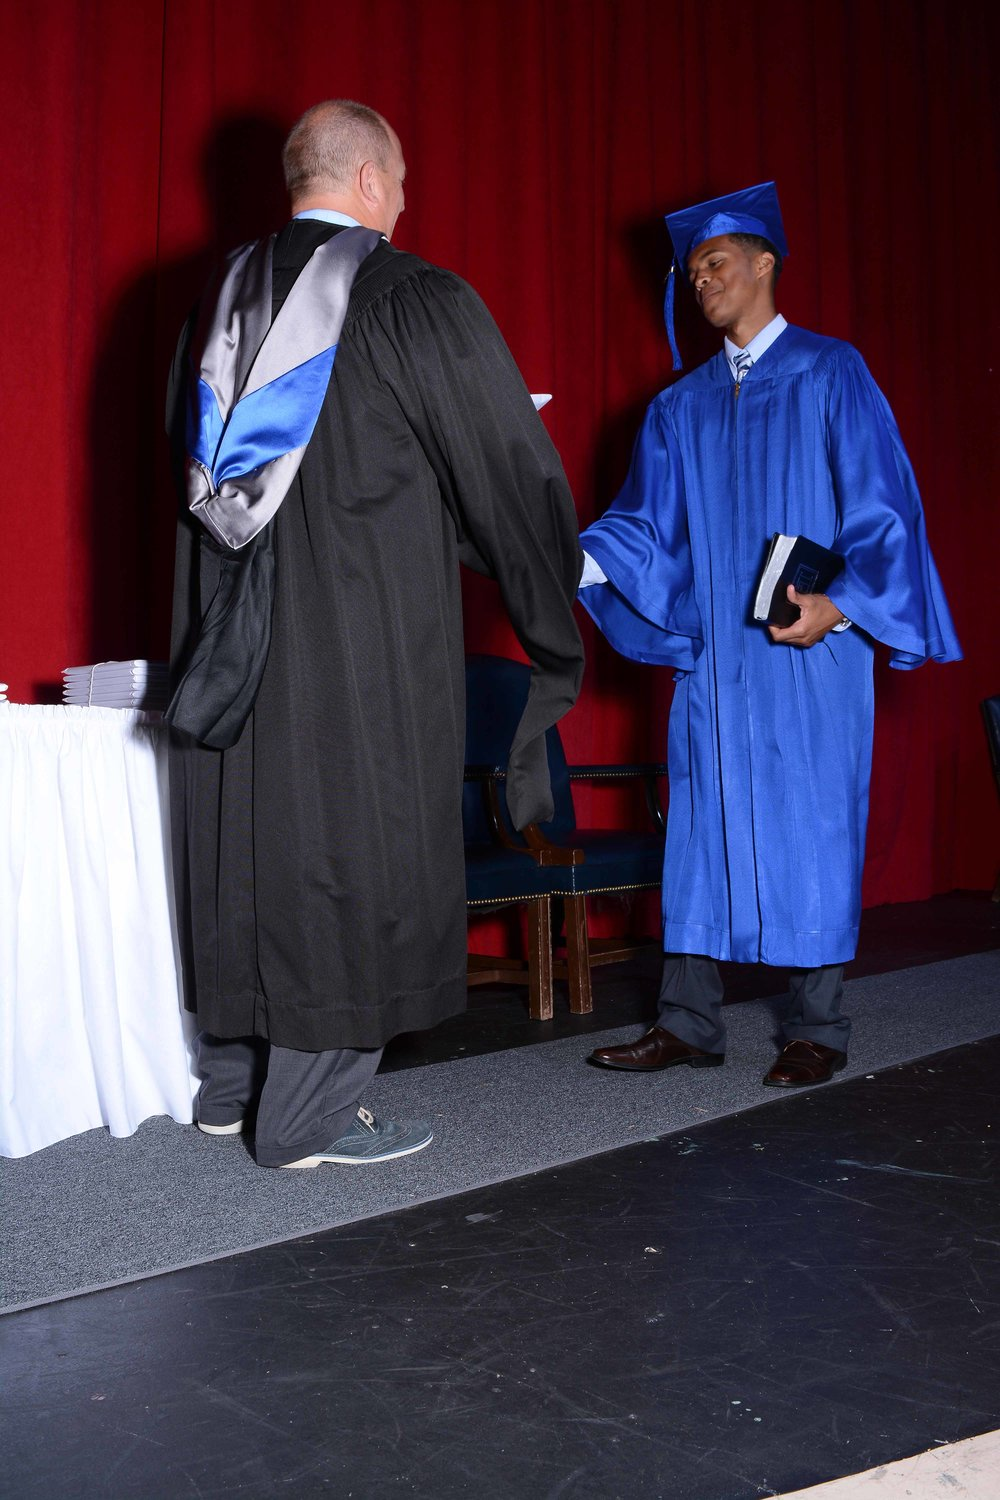 May14 Commencement160.jpg